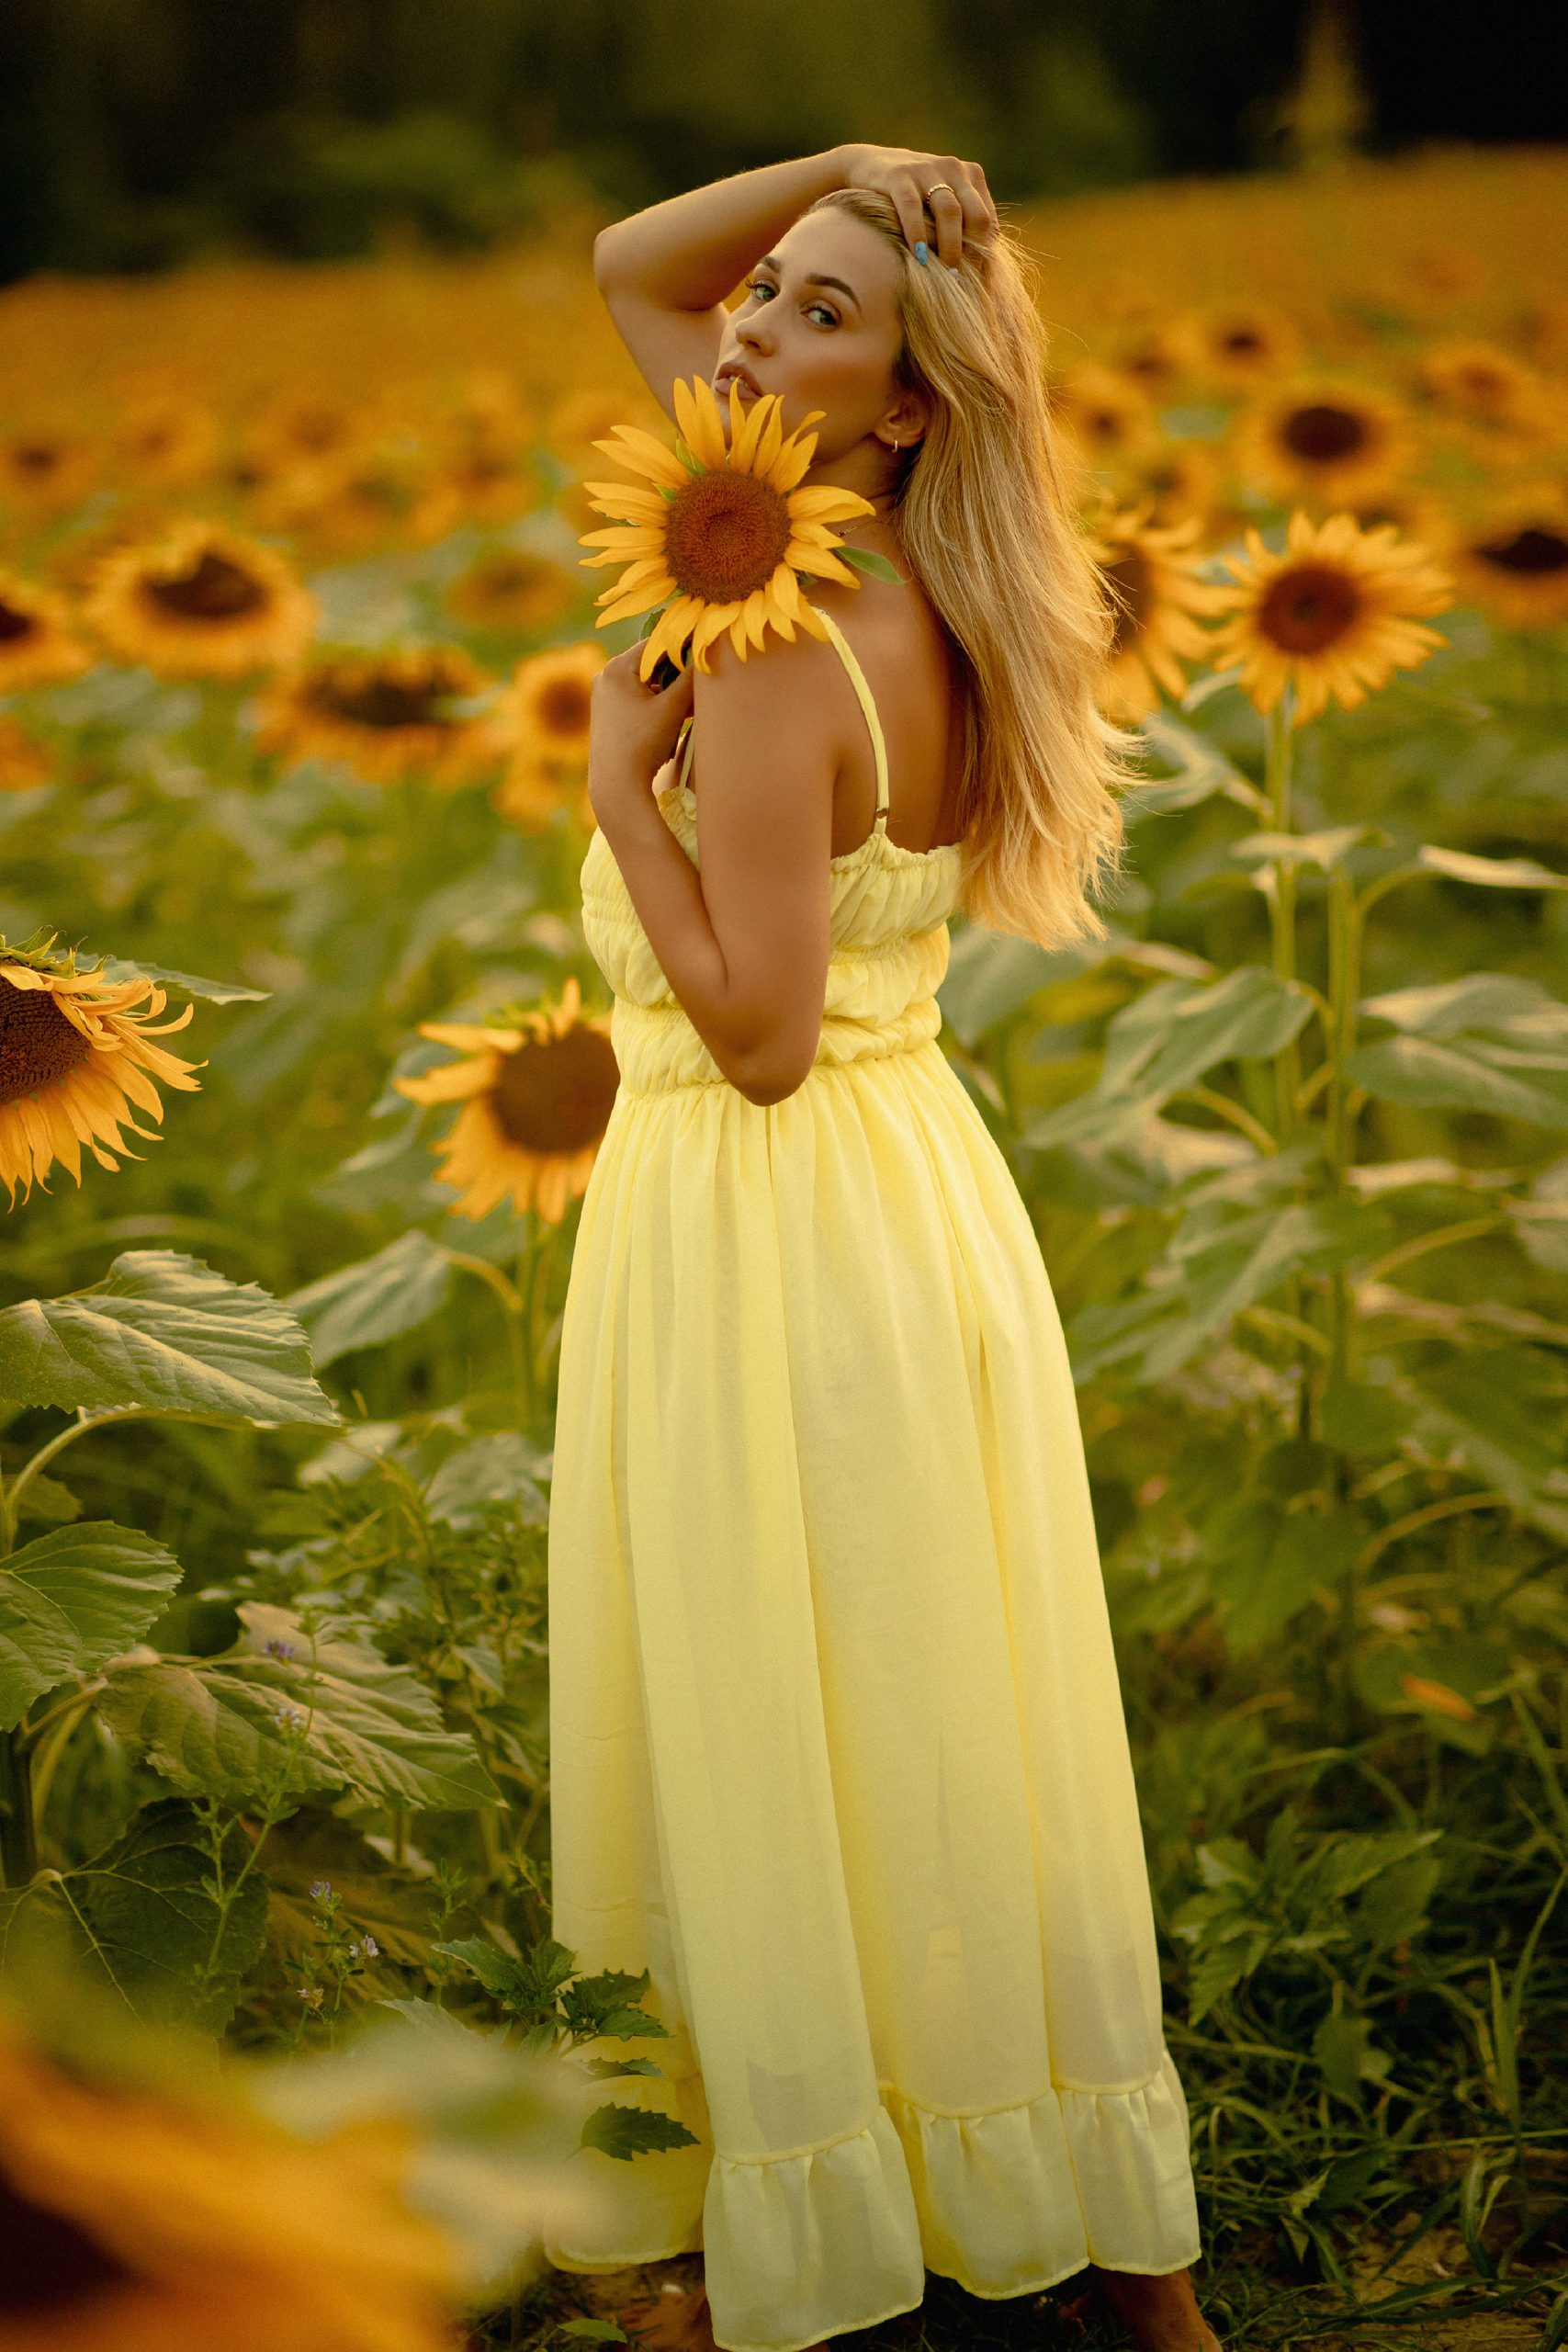 Beautiful posing with a sunflower in her hand